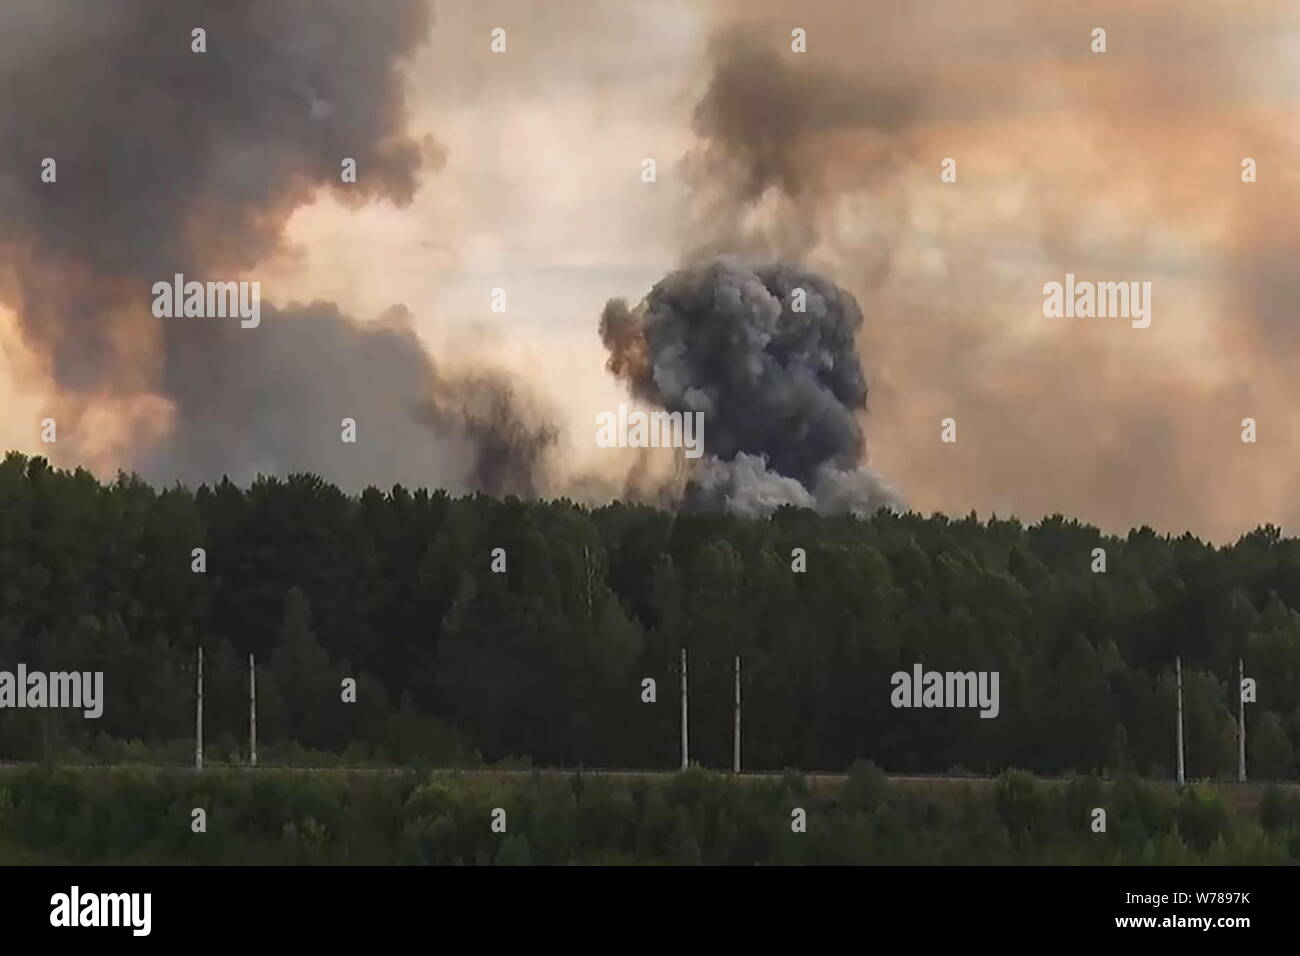 Page 3 Smoke Ammunition High Resolution Stock Photography And Images Alamy